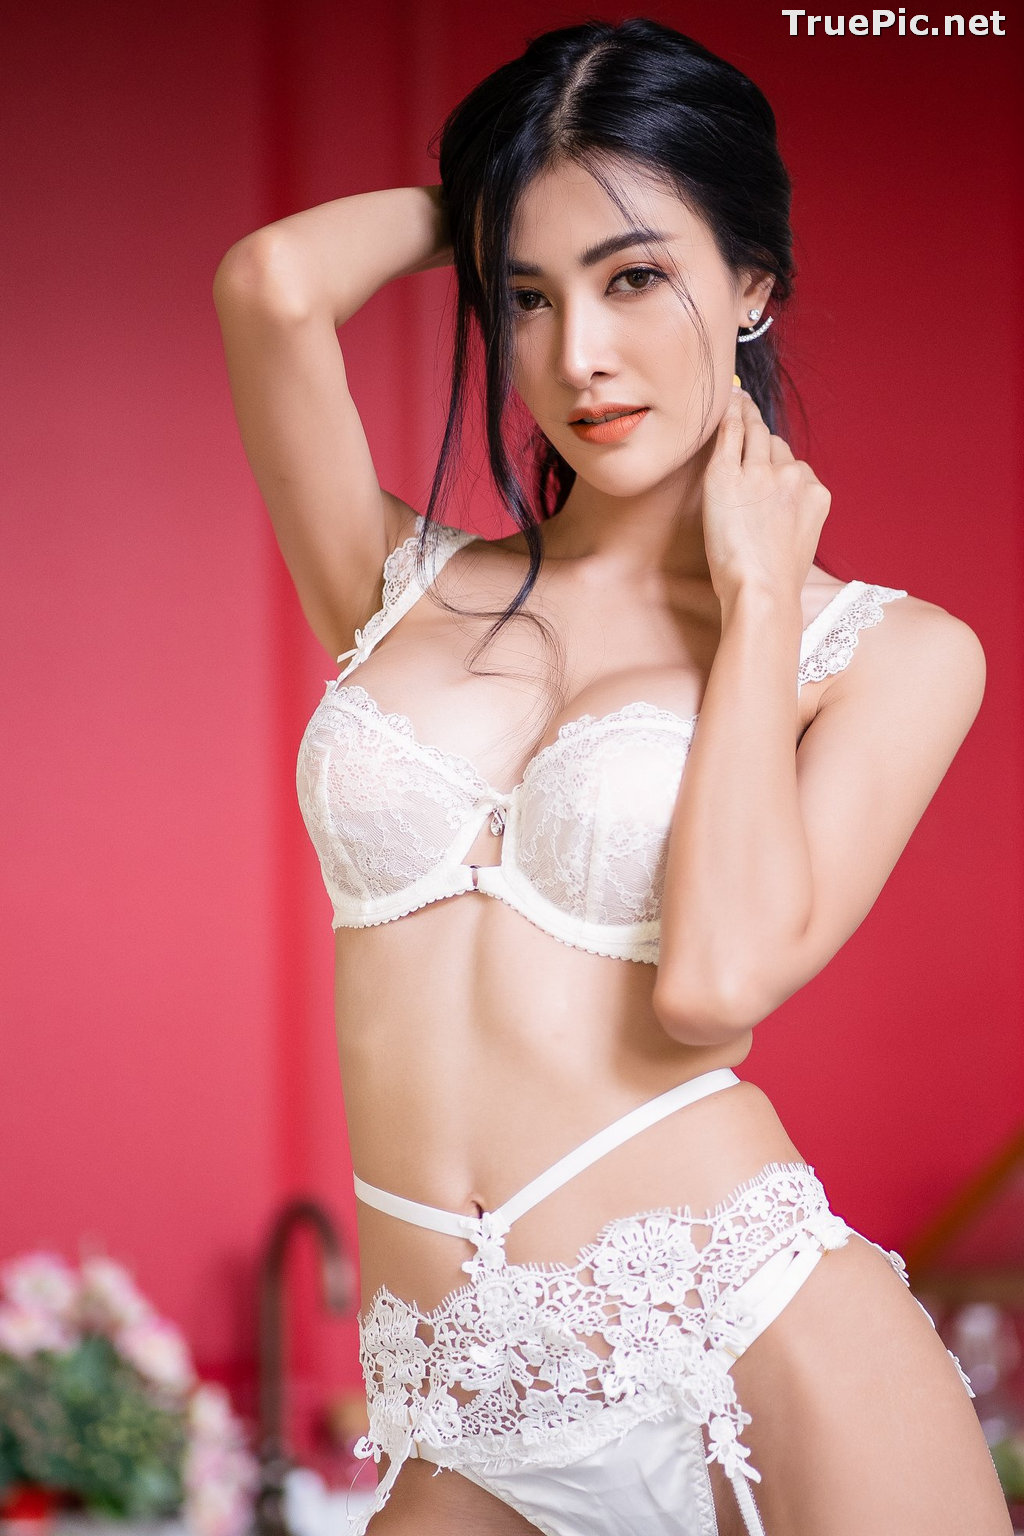 Image Thailand Model – Mutmai Onkanya Pakpean – Beautiful Picture 2020 Collection - TruePic.net - Picture-9